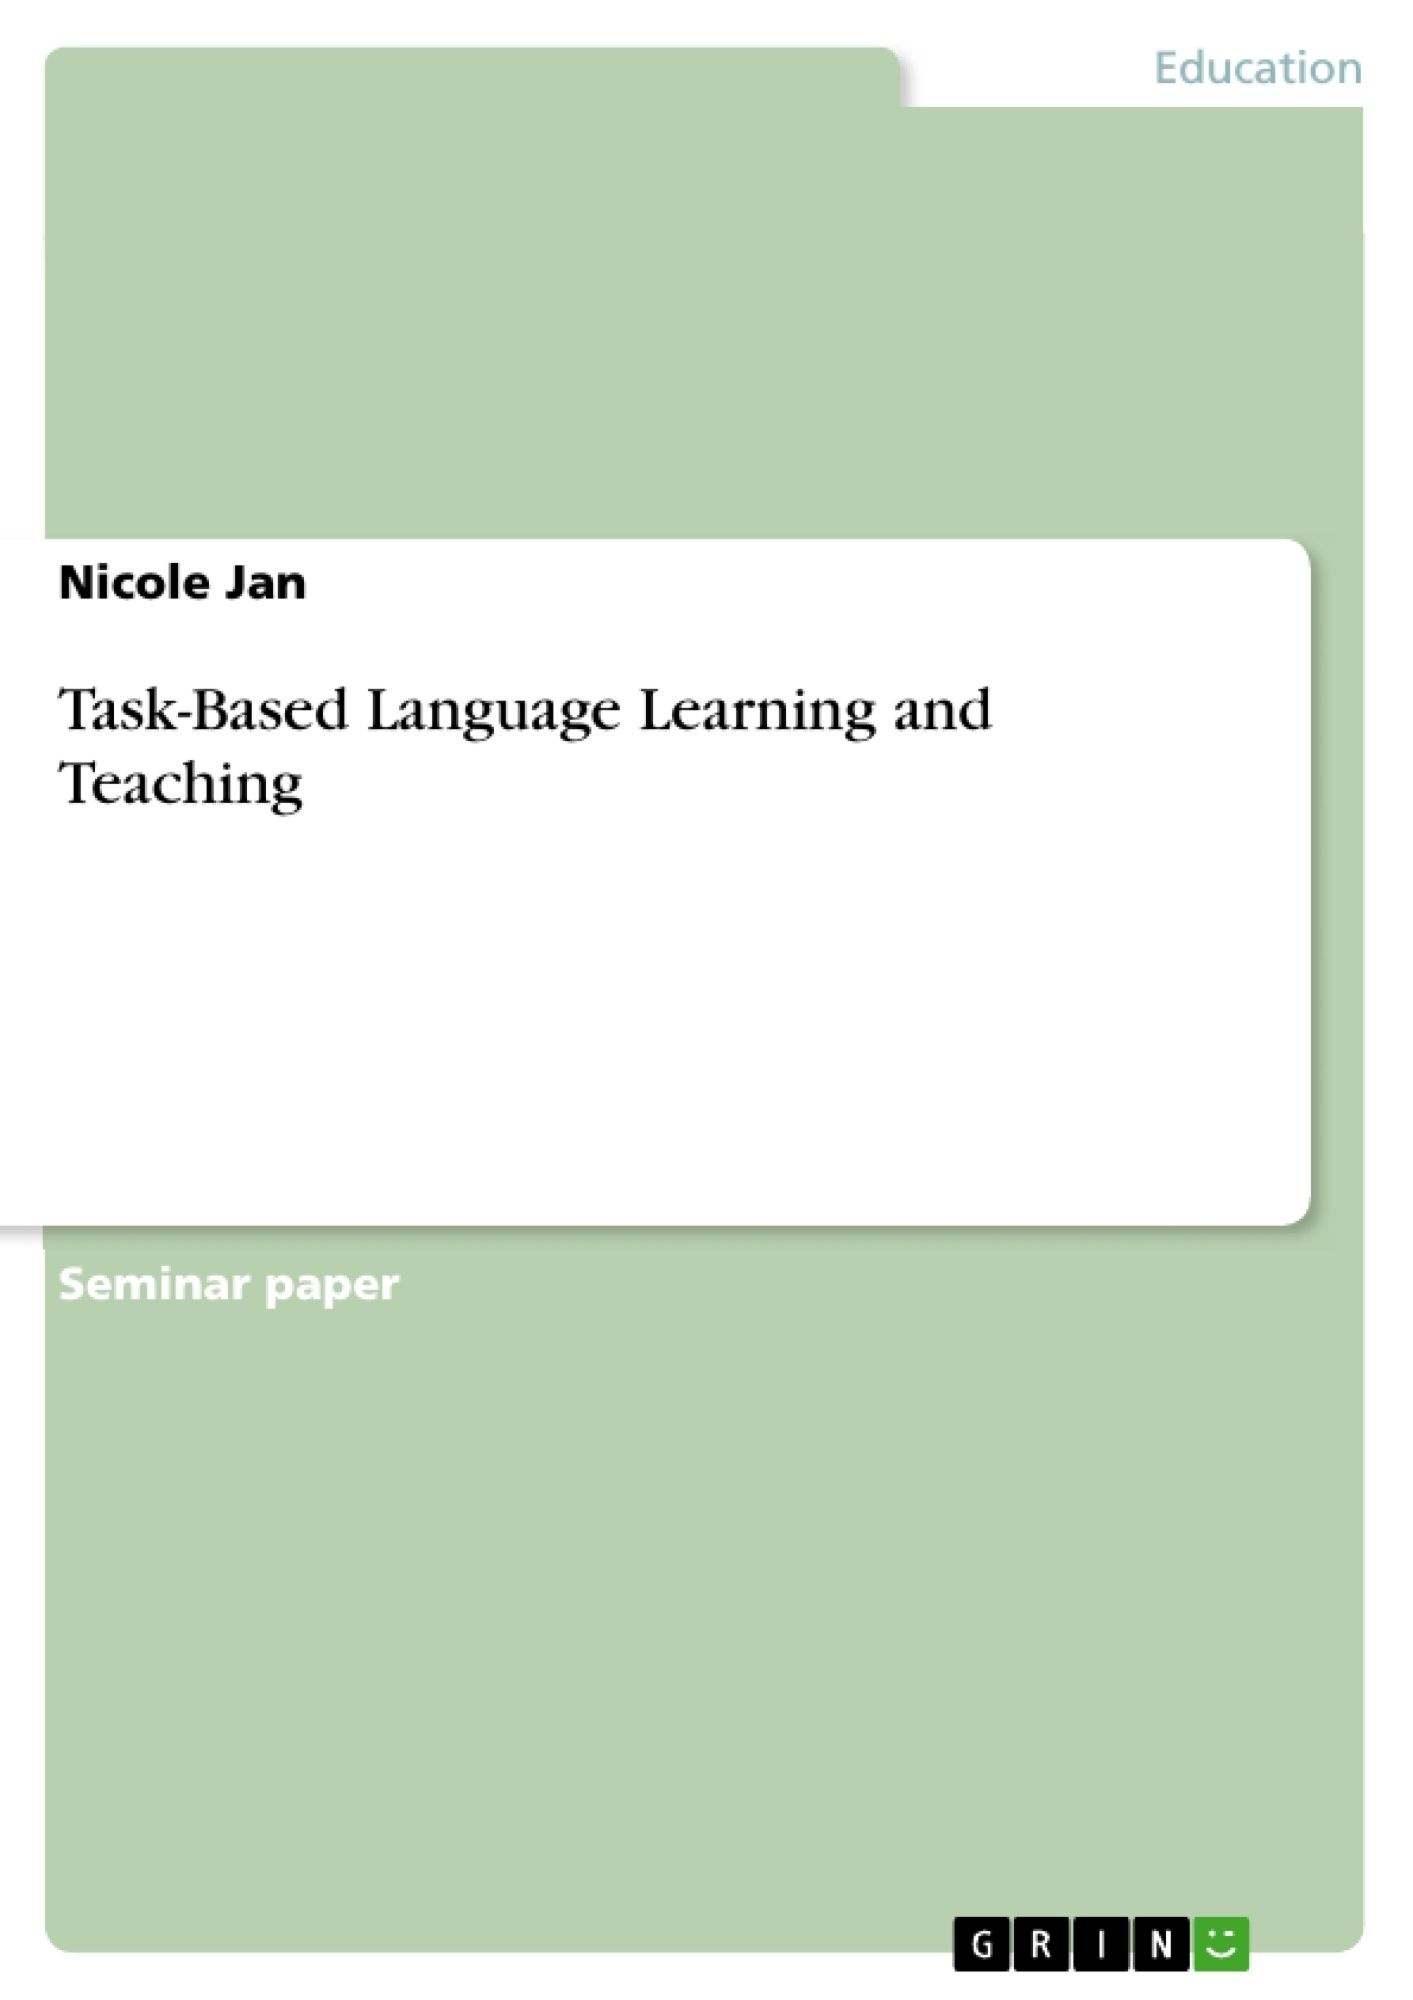 Title: Task-Based Language Learning and Teaching